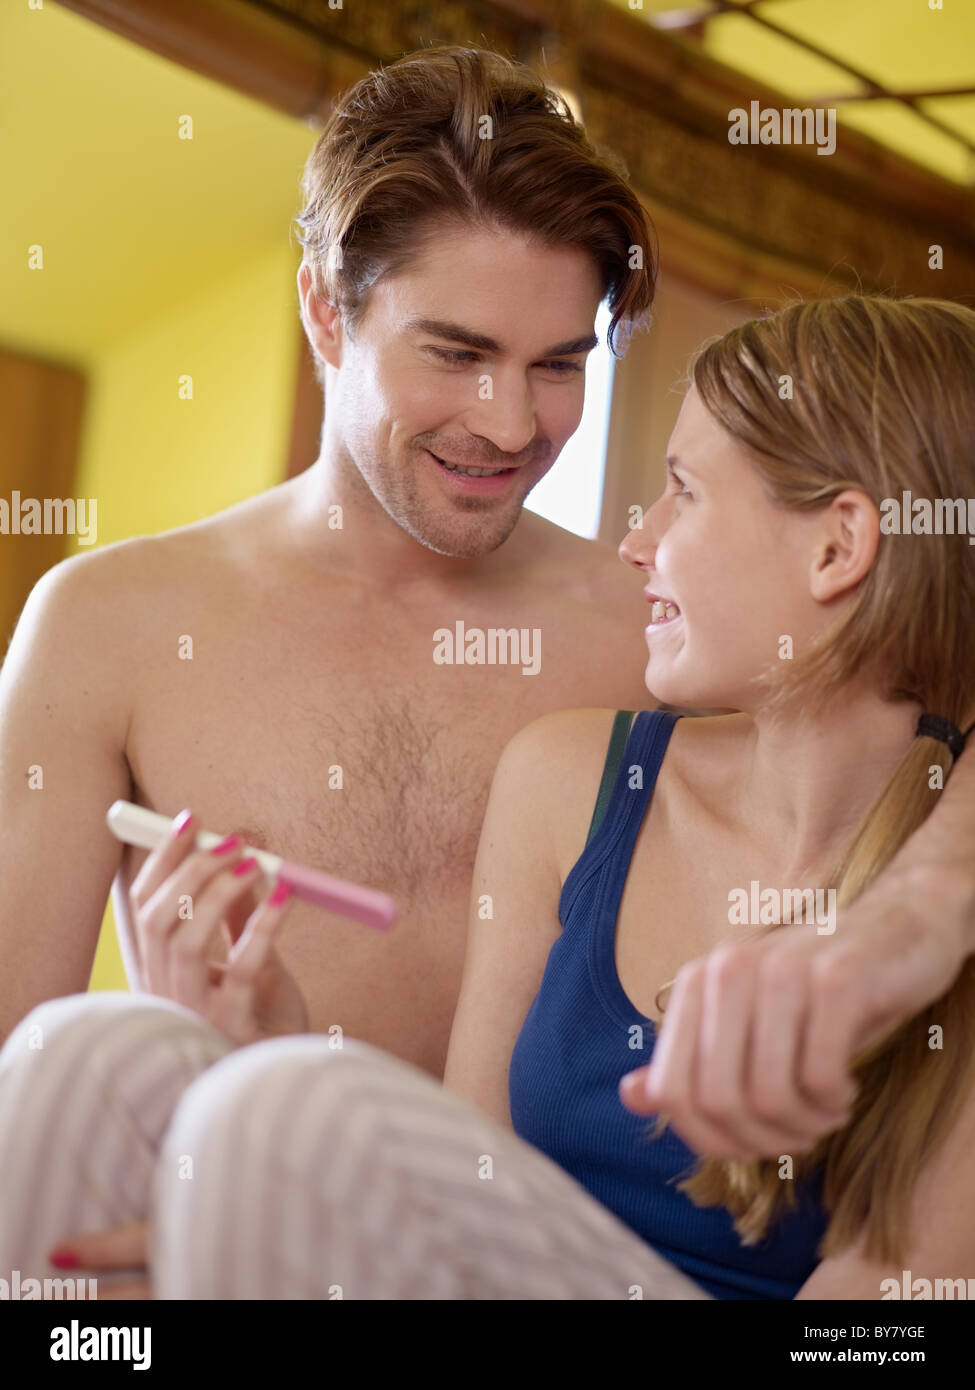 young caucasian woman in tanktop showing positive pregnancy test to her husband and smiling. - Stock Image